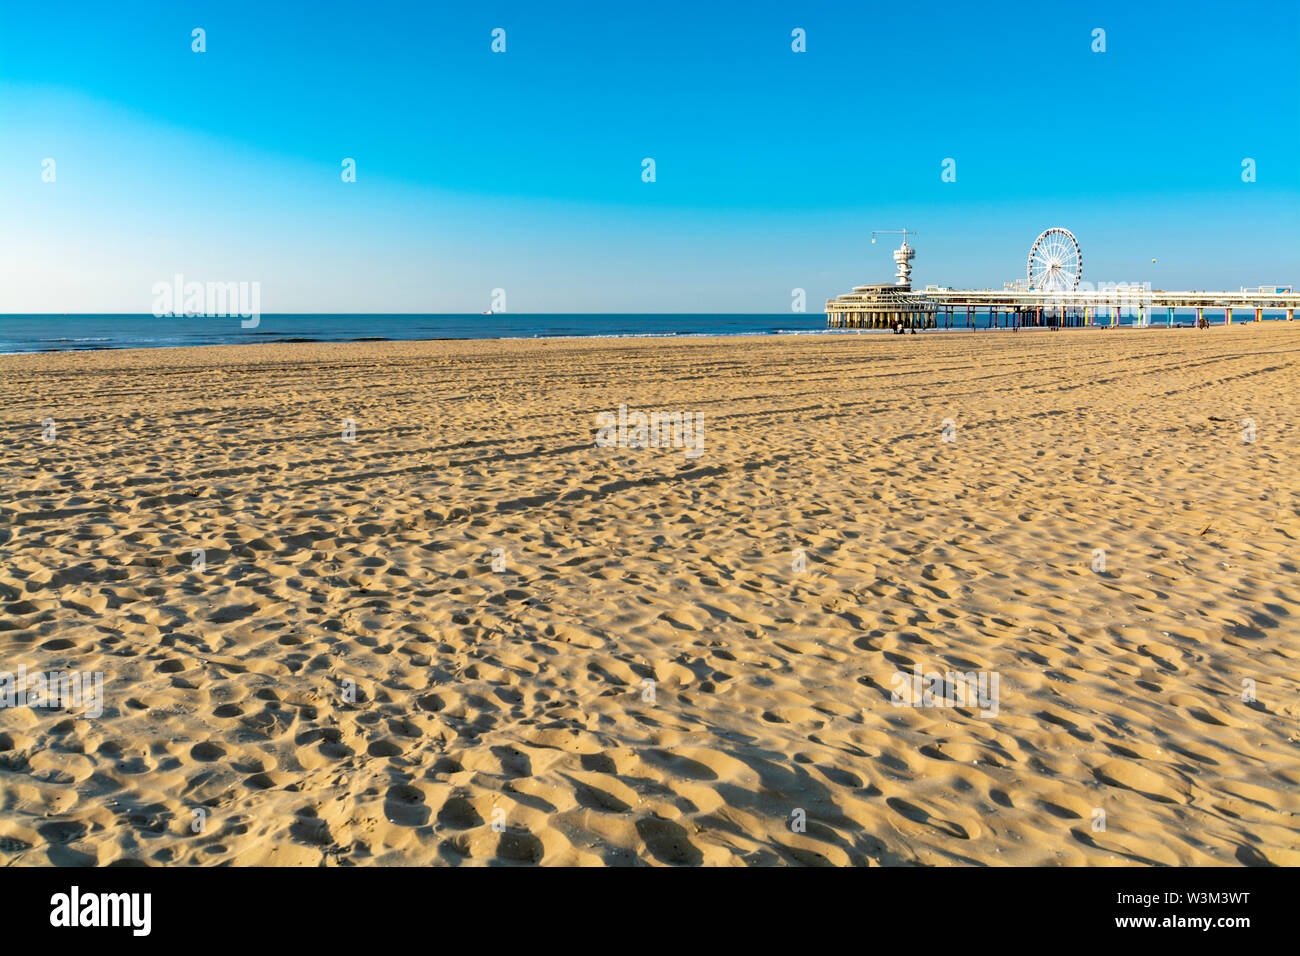 Sunny day on North sea beach in Netherlands in Scheveningen, tourist and vacation destination in Europe - Stock Image